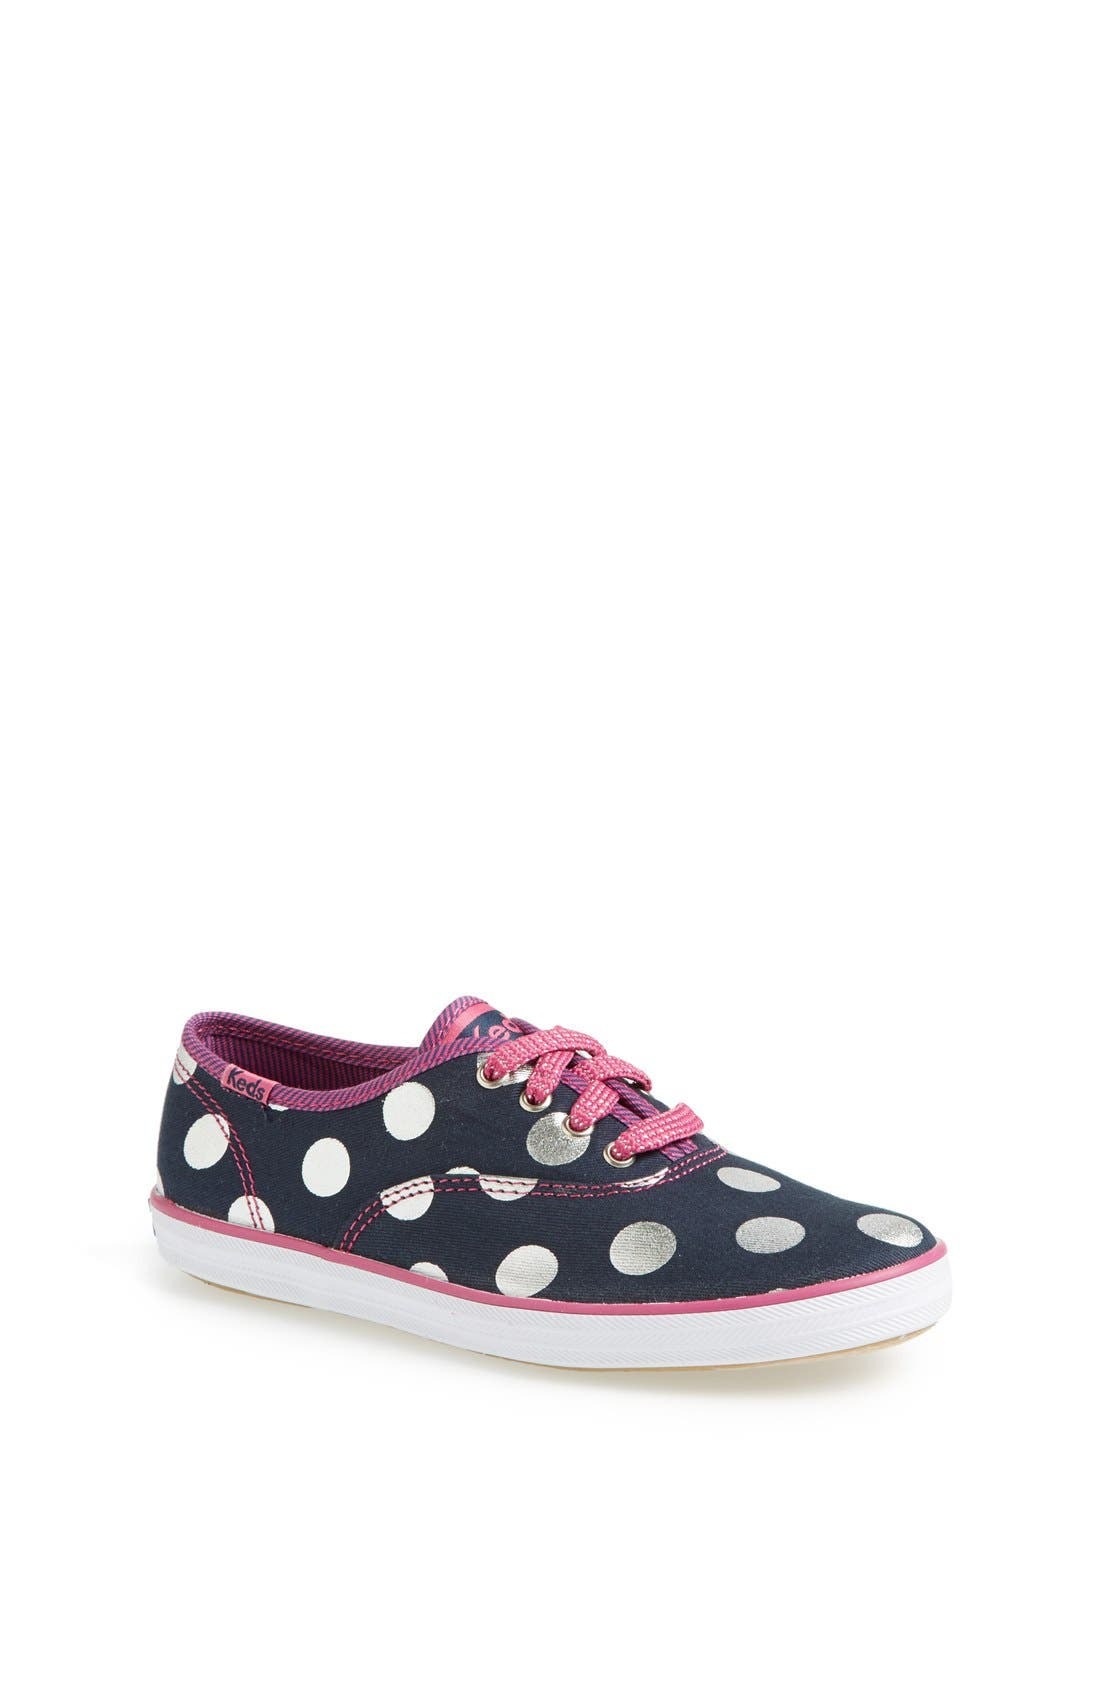 Main Image - Keds® 'Champion' Polka Dot Sneaker (Walker, Toddler, Little Kid & Big Kid)